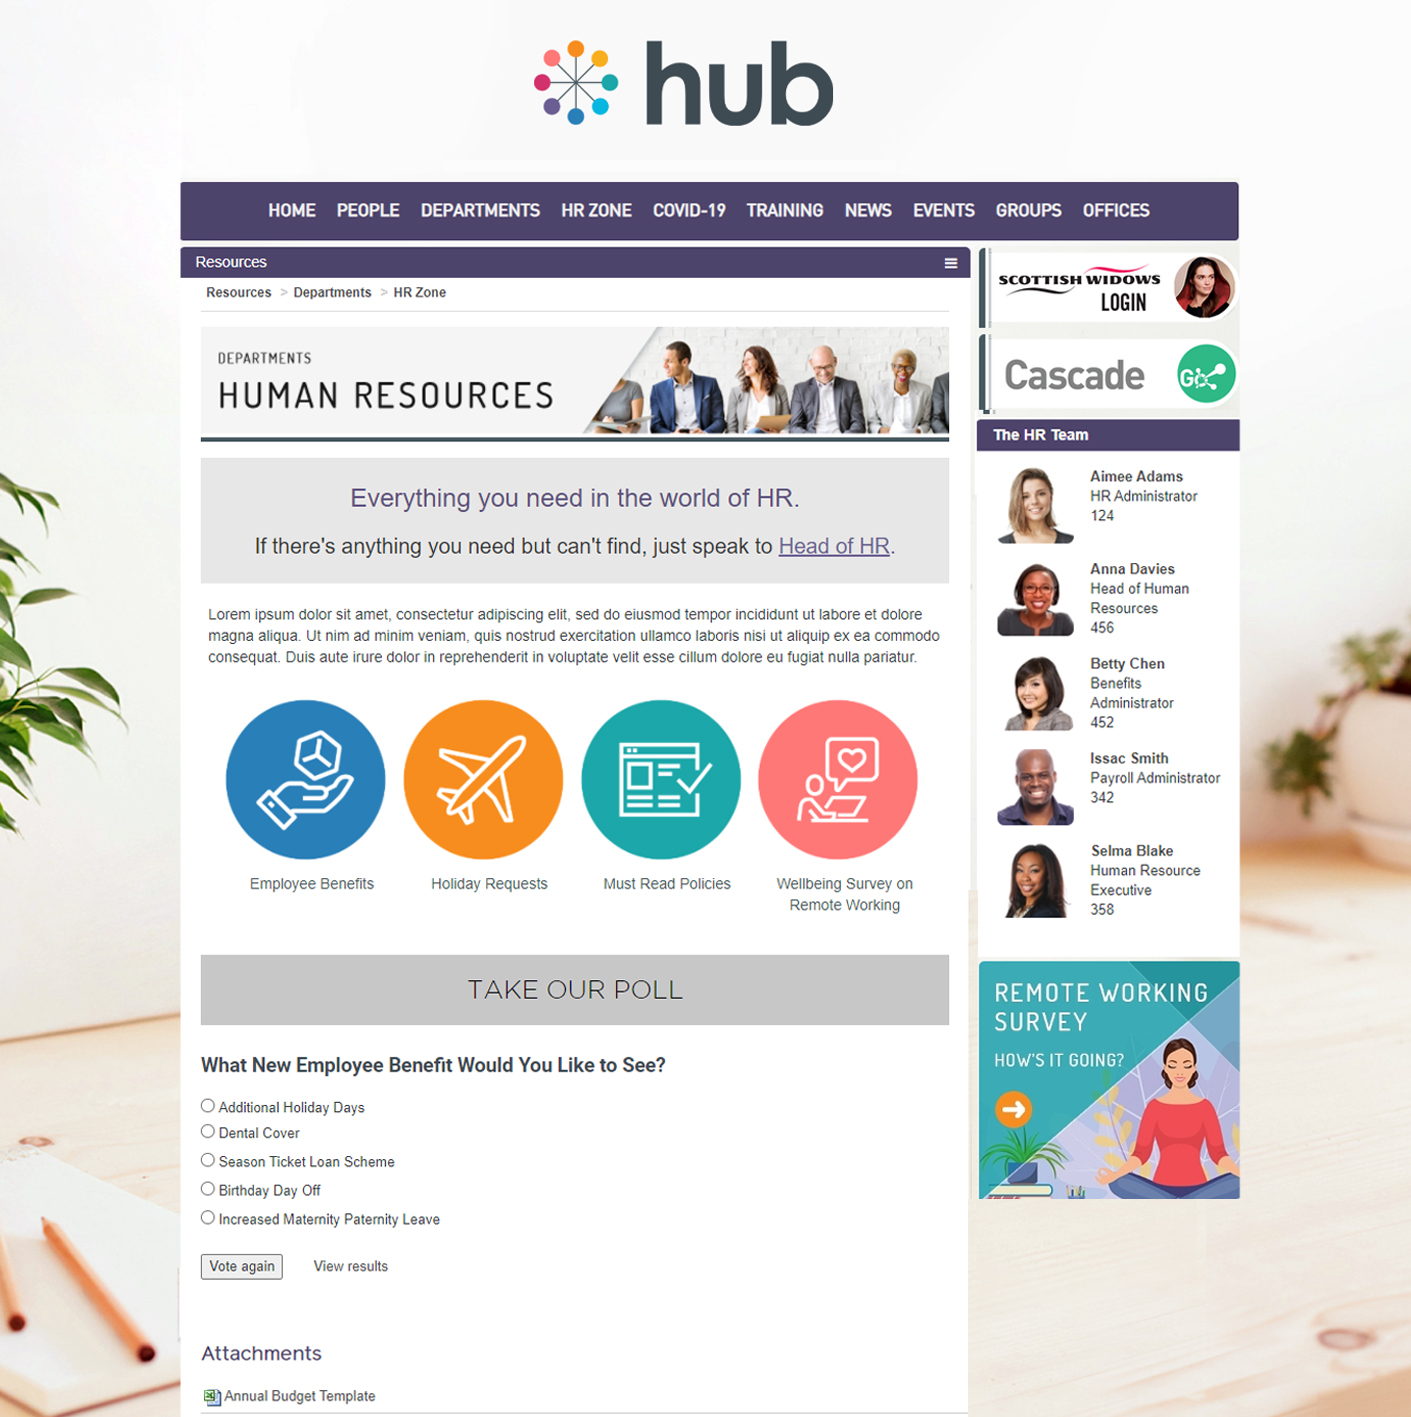 Hub Resource pages  - build department pages, with visual subfolders of relevant information, and embed rich media for data gathering i.e. polls, forms, surveys, assessments etc.